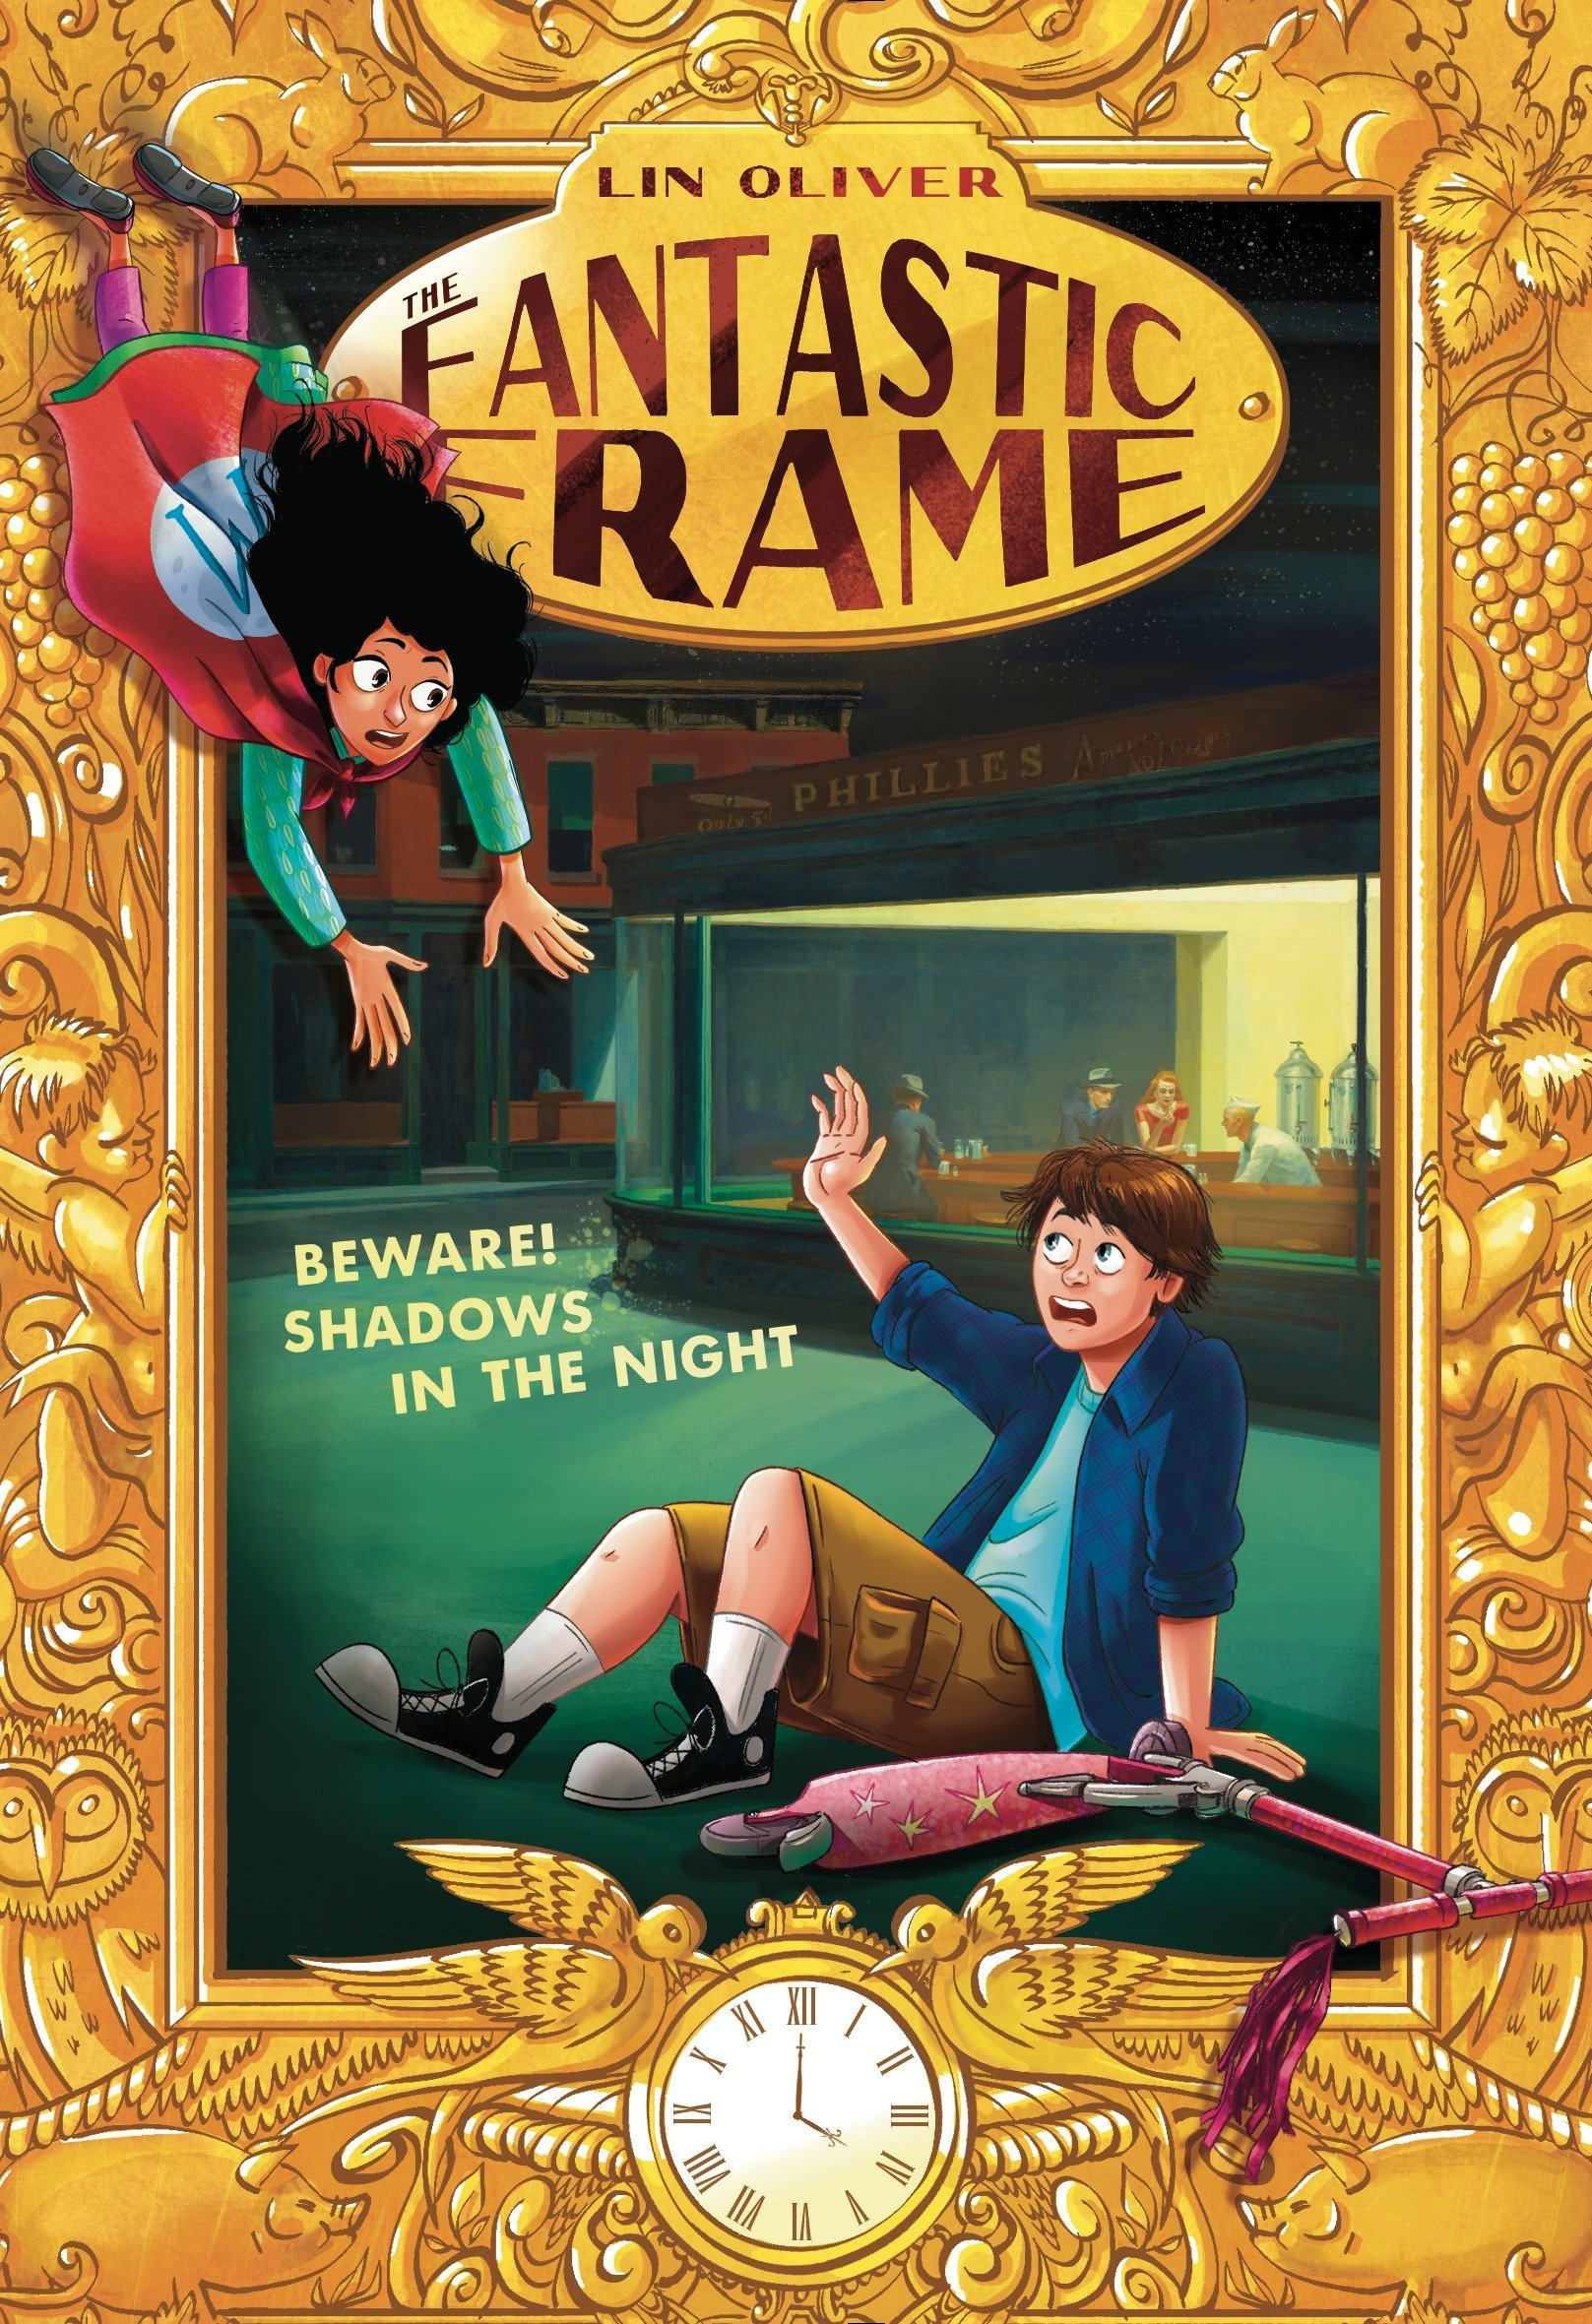 Download Beware! Shadows in the Night #3 (The Fantastic Frame) pdf